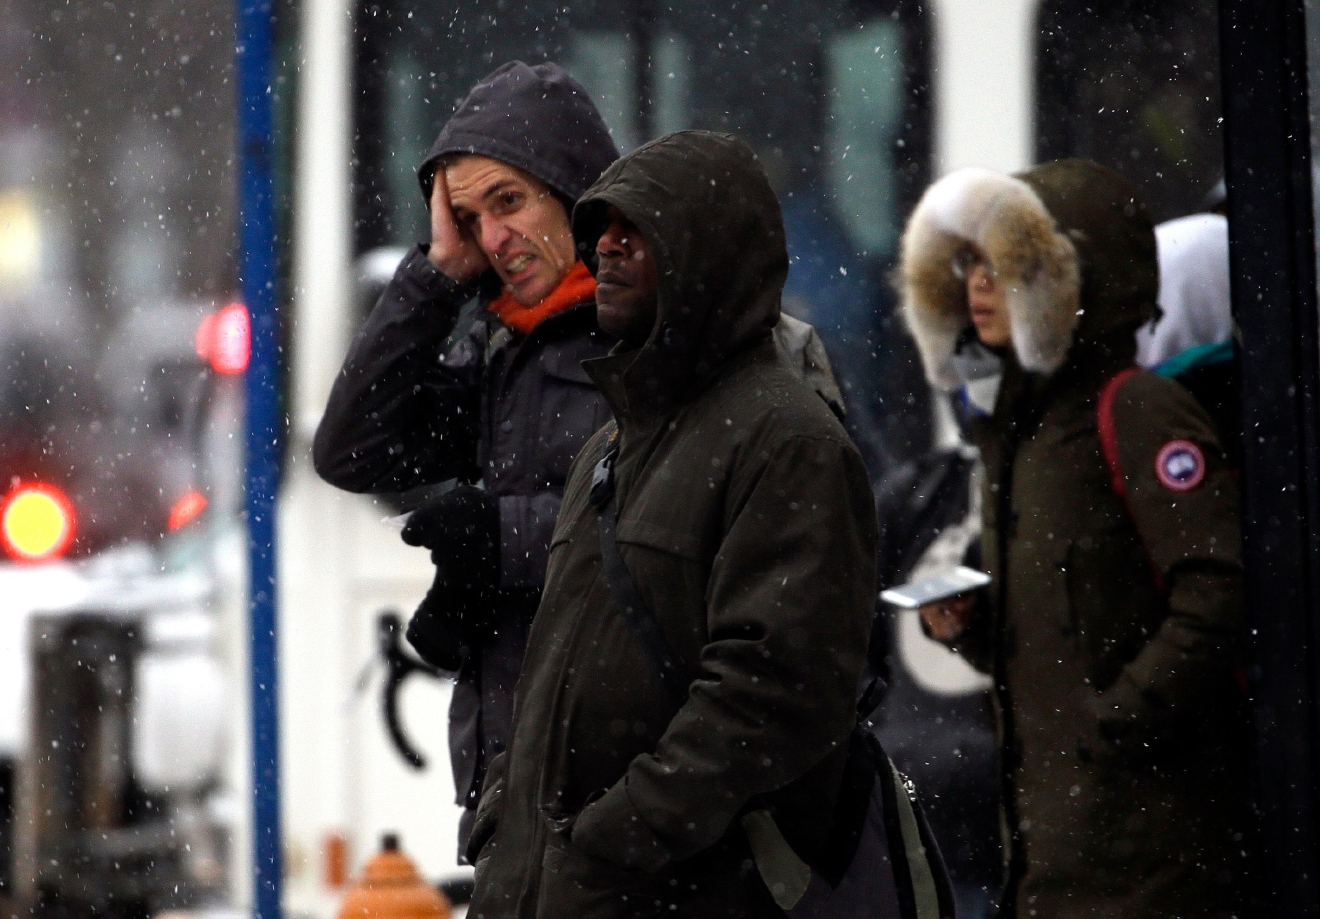 Bus riders, bundled against the cold, wait for the next ride as a snow storm moves in on the area in Portland, Ore., Wednesday, Dec. 14, 2016. A wintry afternoon and evening is forecast for much of Oregon, with some cities expected to get a foot of snow.(AP Photo/Don Ryan)